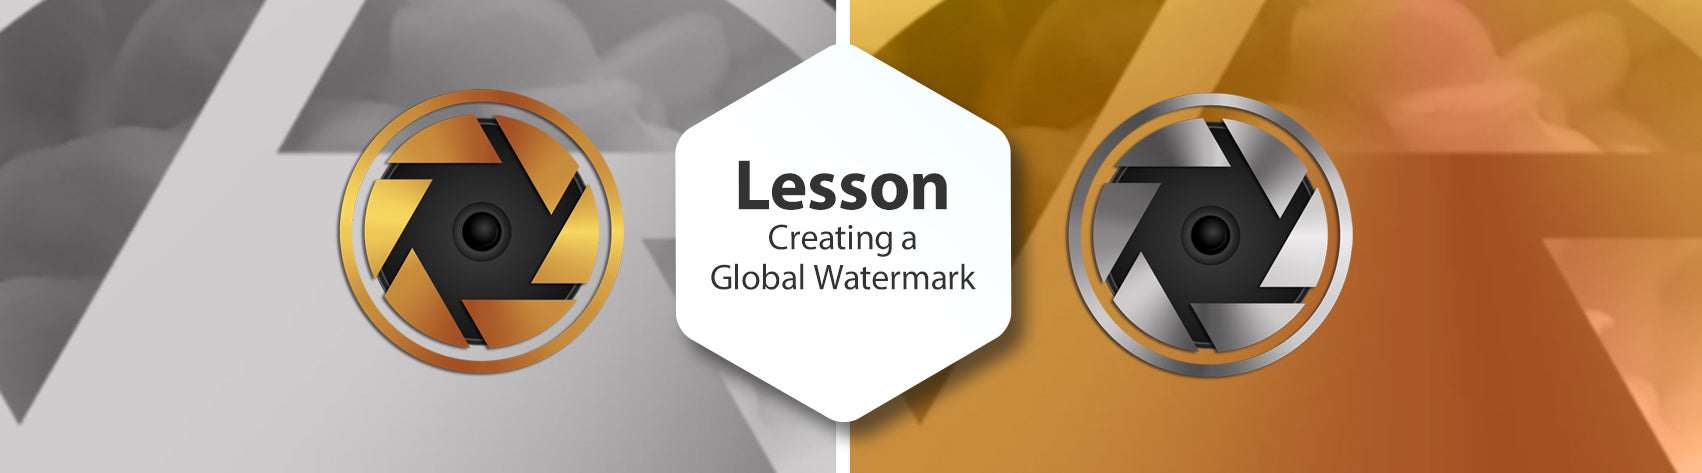 Lesson - Creating a Global Watermark